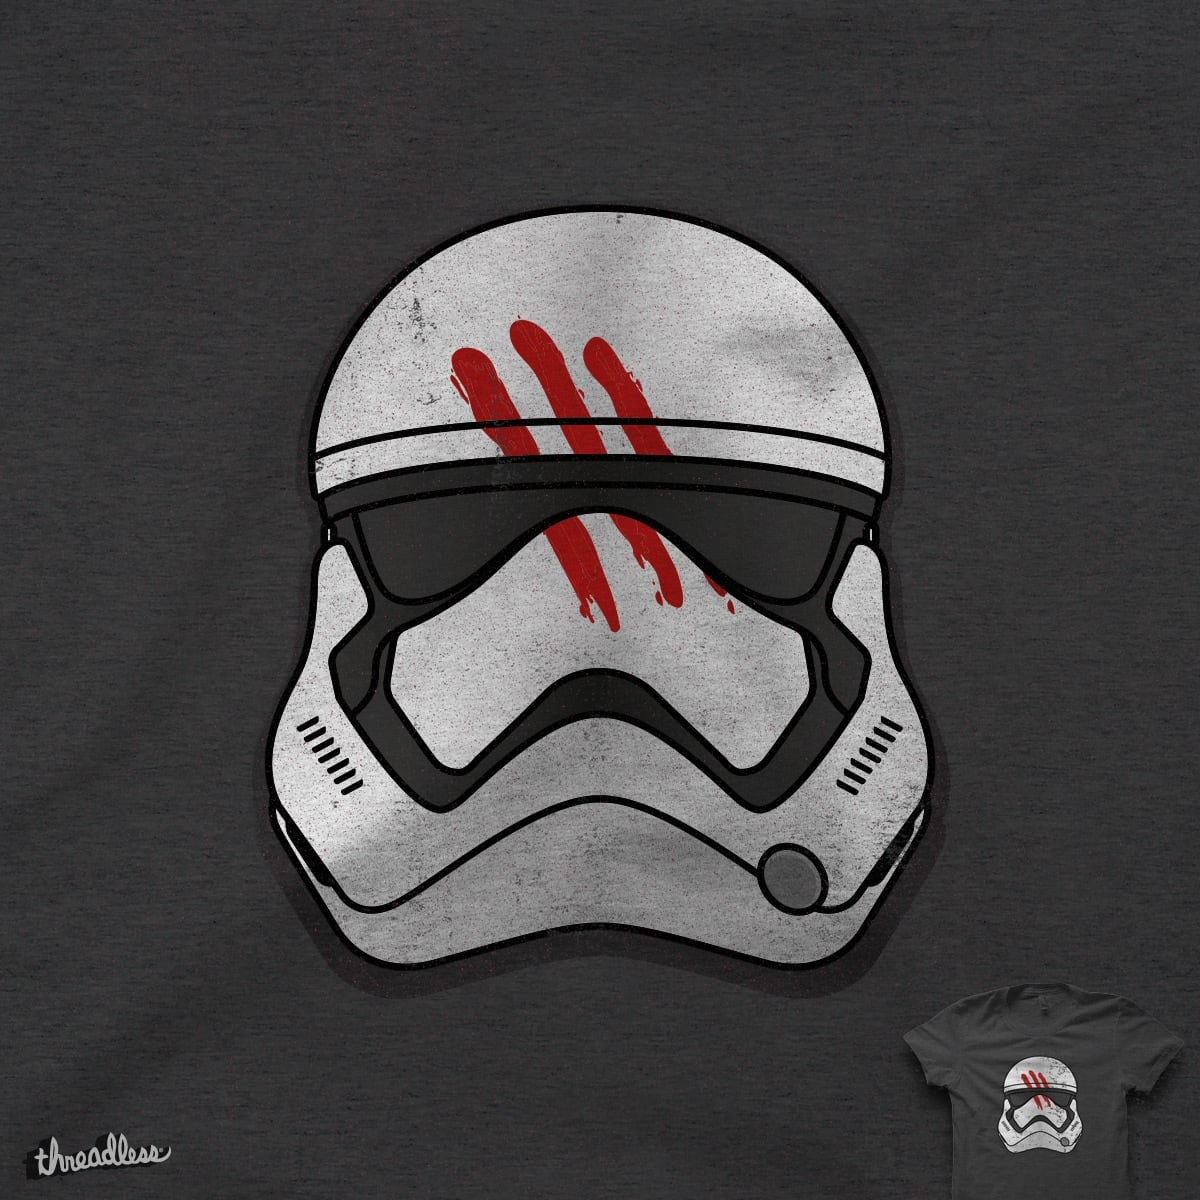 FN-2187 by quick-brown-fox on Threadless